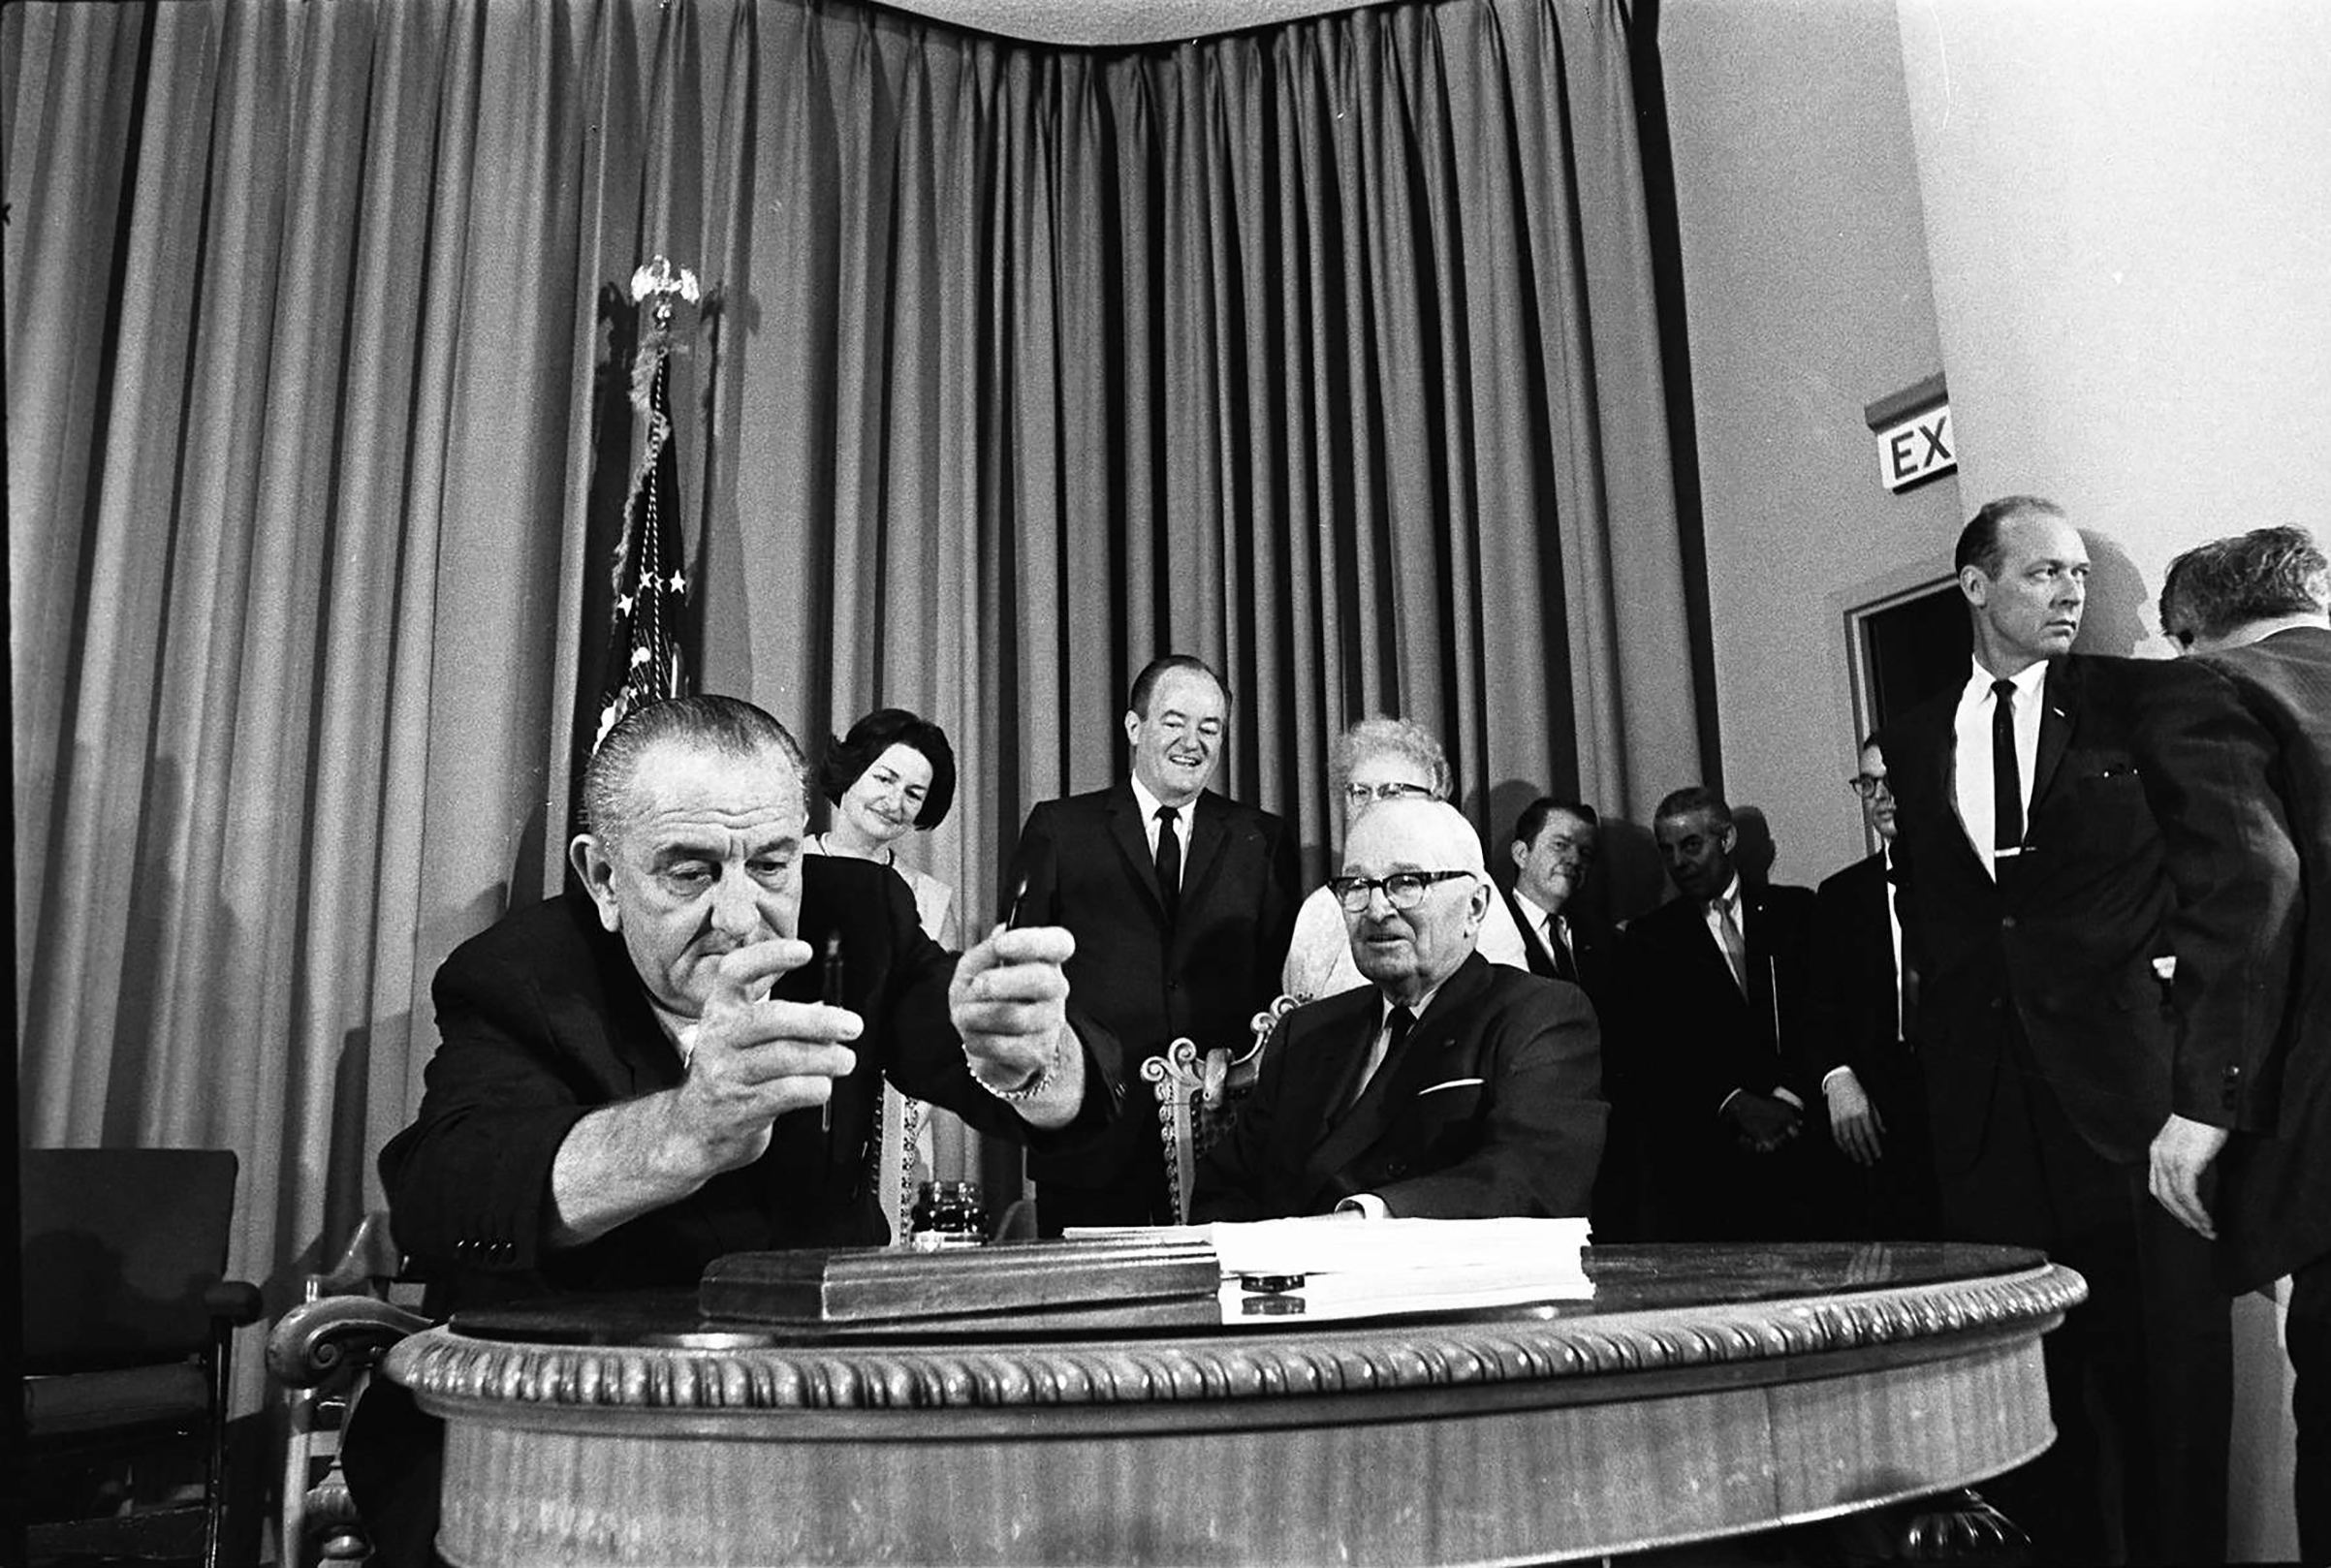 President Lyndon Johnson signs legislation creating Medicare and Medicaid in 1965.